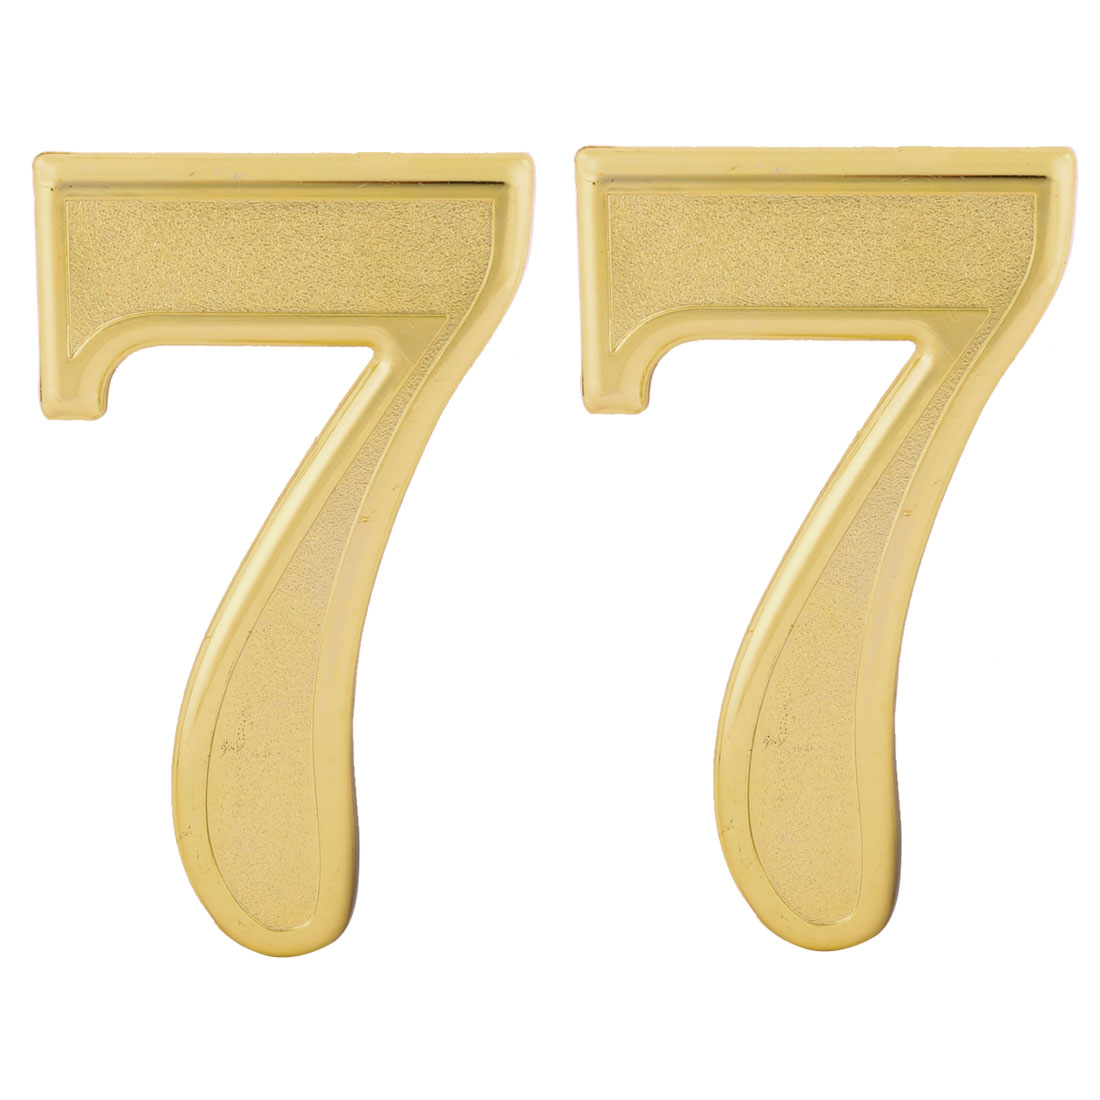 Hotel Door Plastic 7 Shaped Self Adhesive Plate Sign Number Label Gold Tone 2pcs